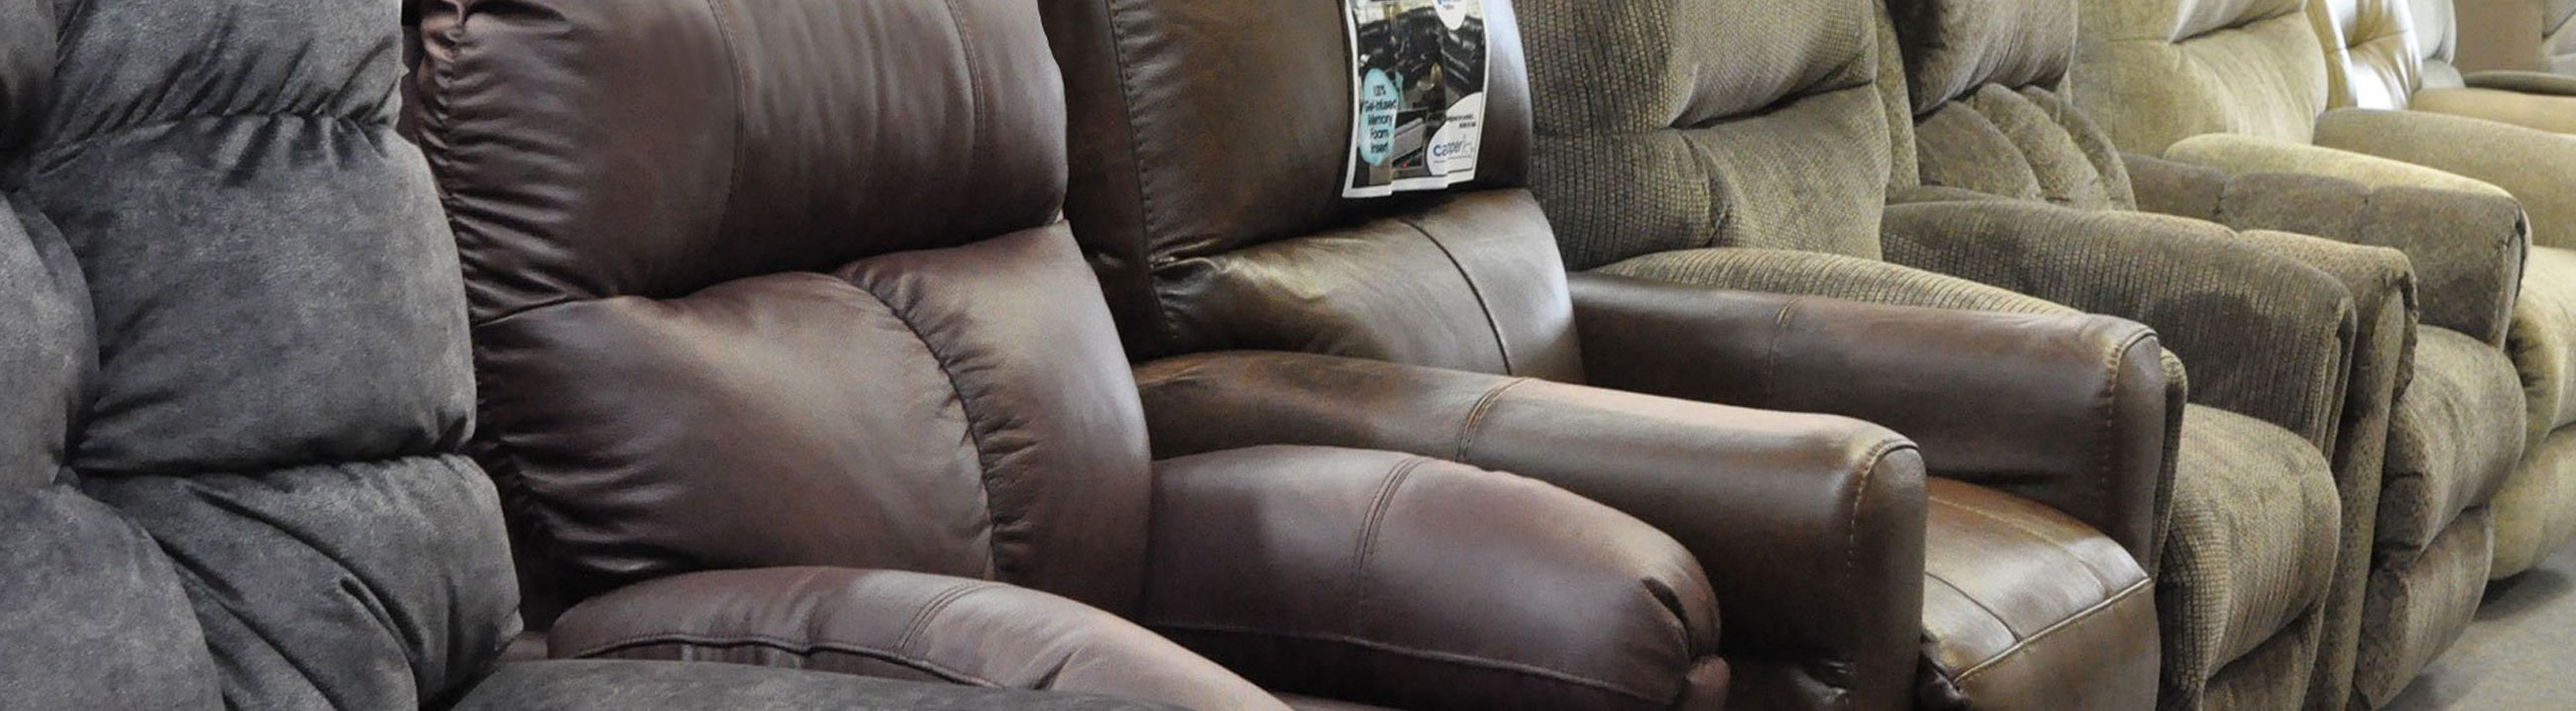 Becker Furniture Has A Wide Range Of Chairs And Recliners